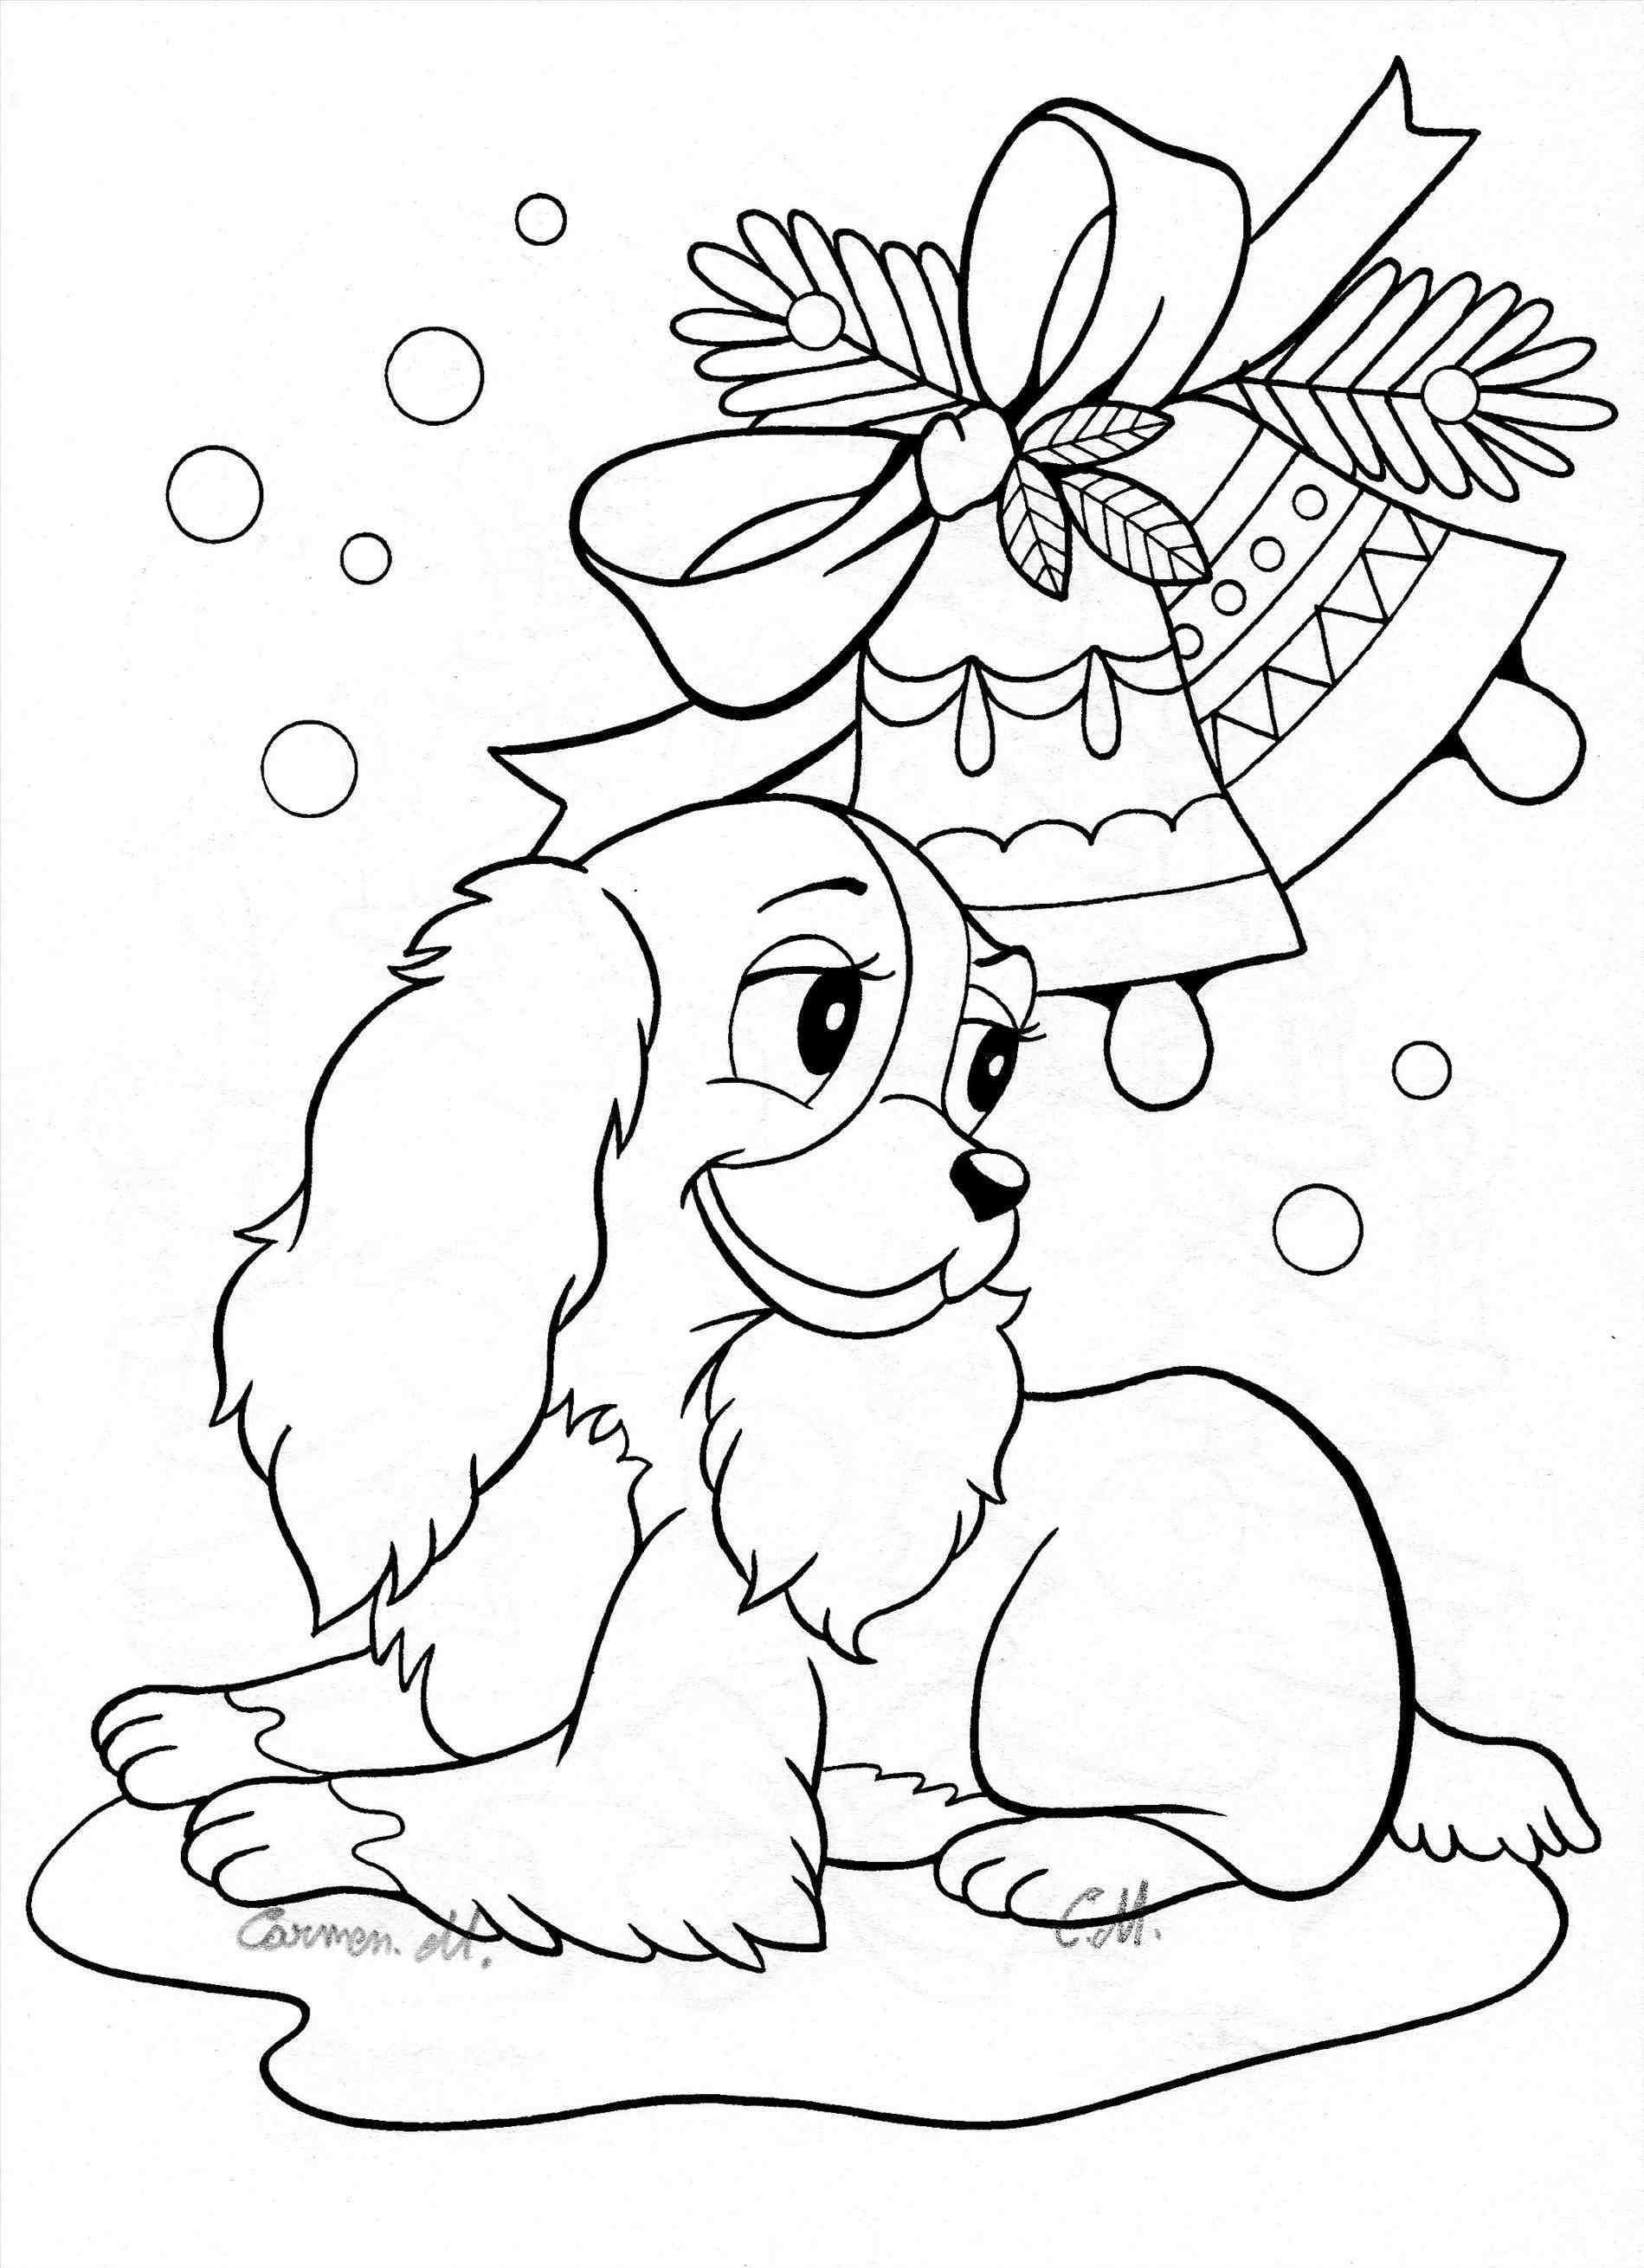 27 Exclusive Image Of Rudolph Coloring Page